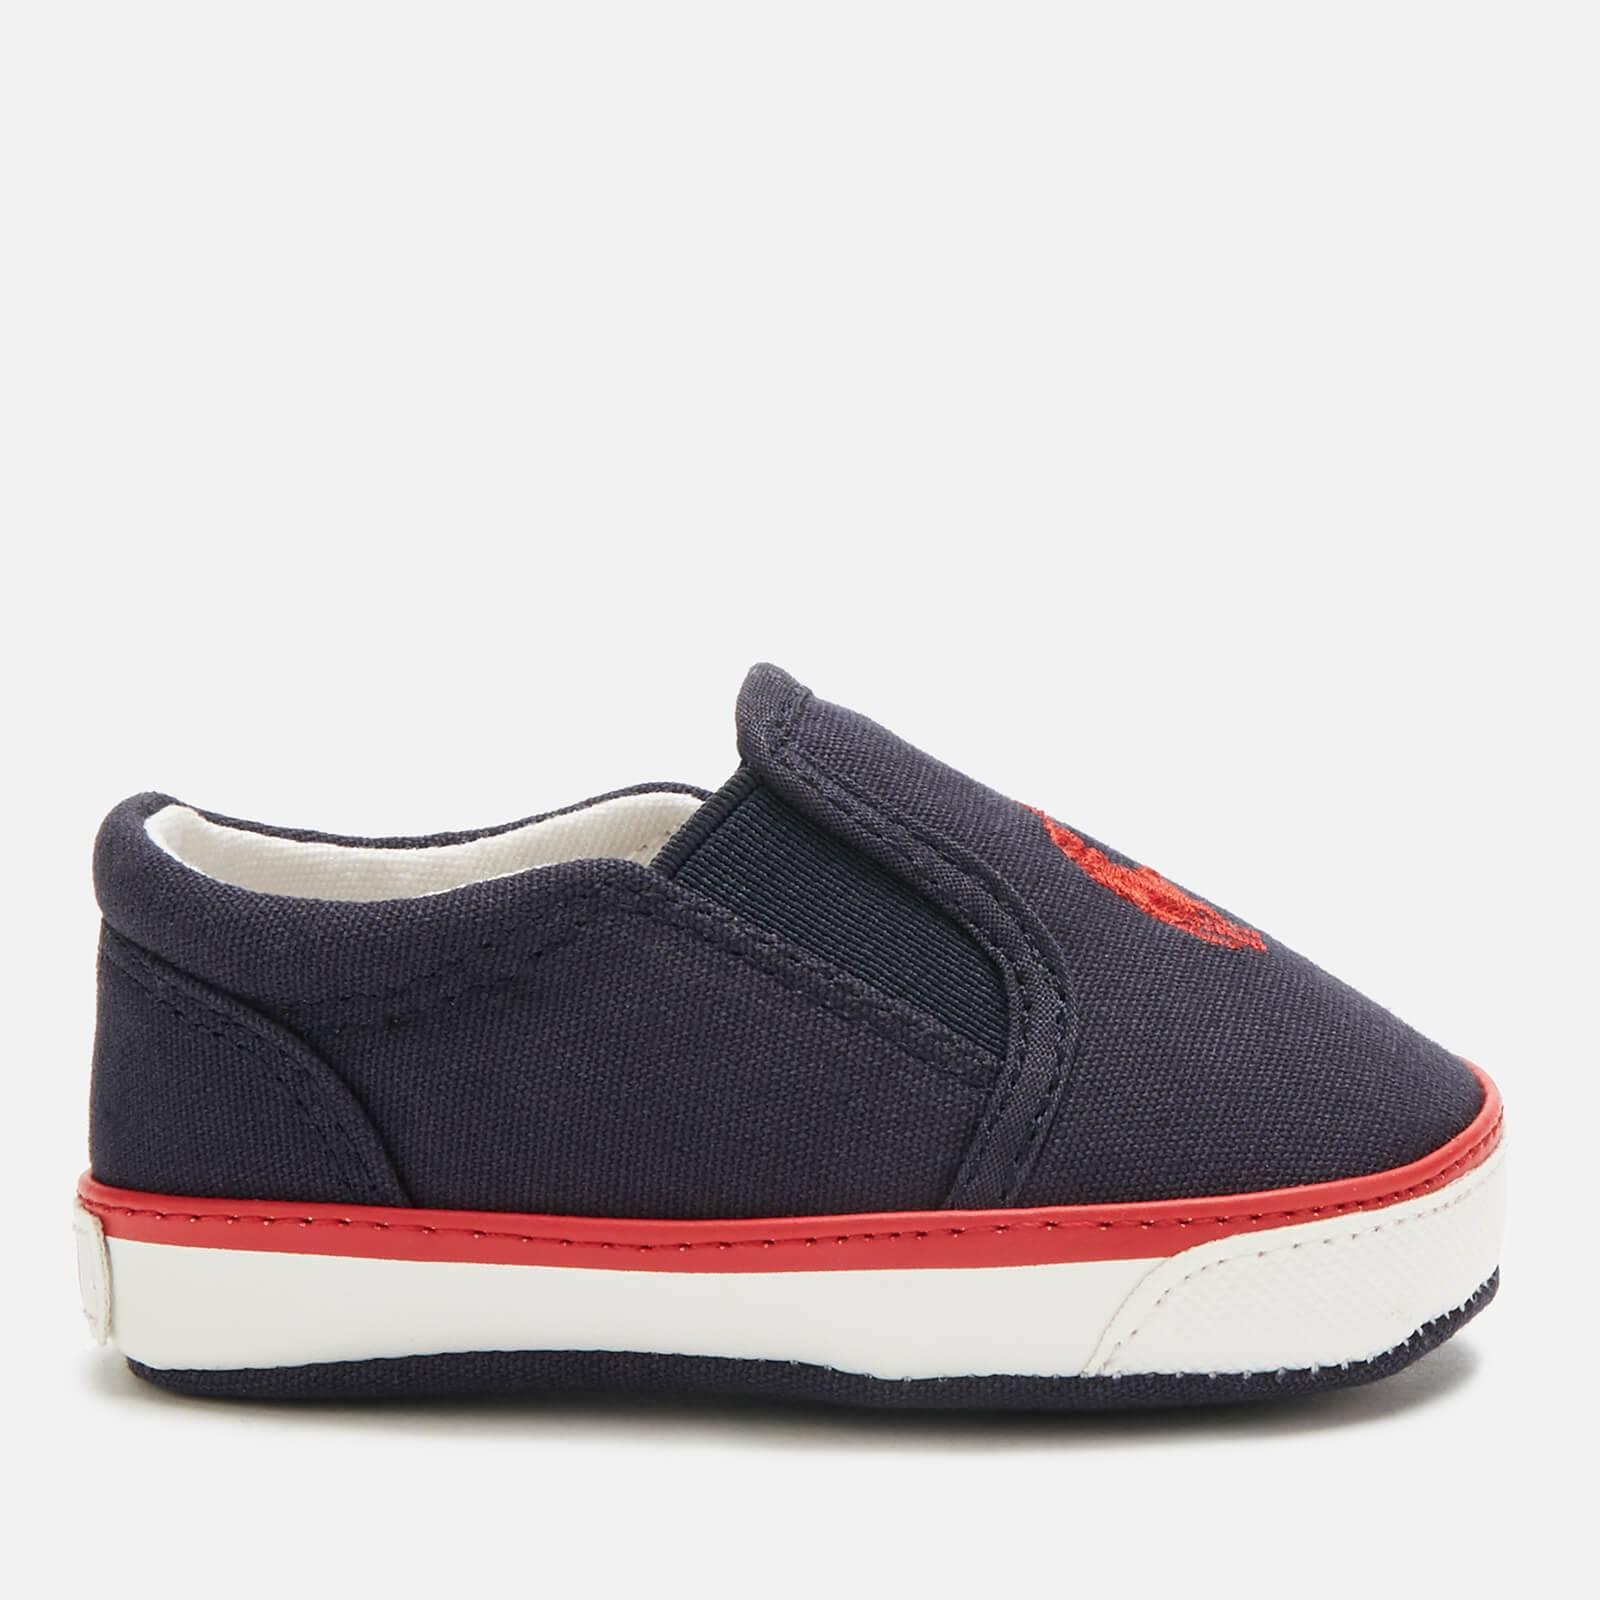 Ralph Lauren Polo Ralph Lauren Babies' Bal Harbour II Canvas Slip-On Pumps - Navy/Red PP - UK 3.5 Baby/EU 19 - Blue